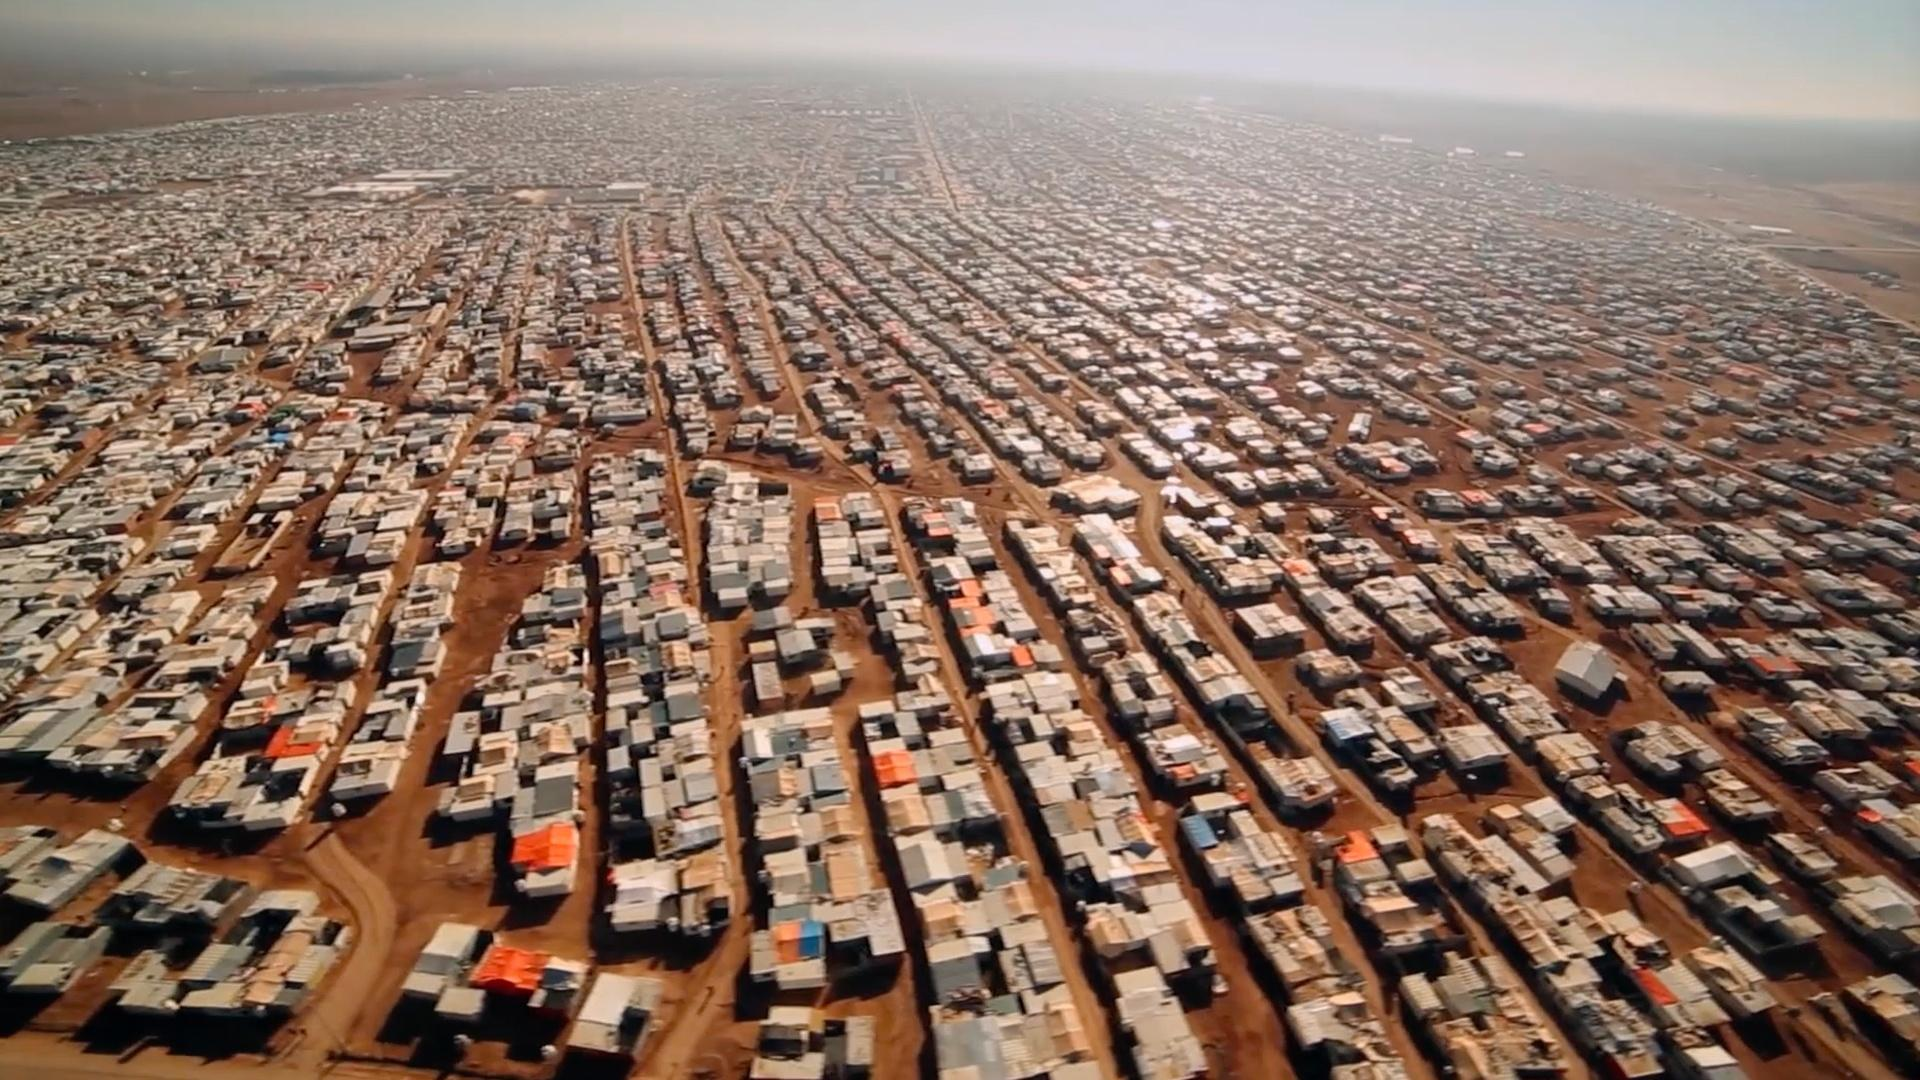 Za'atari Refugee Camp, Jordan is home to 80,000 refugees from Syria's civil war. Follow the water to see the role drought can play in war, and in politics around the world.